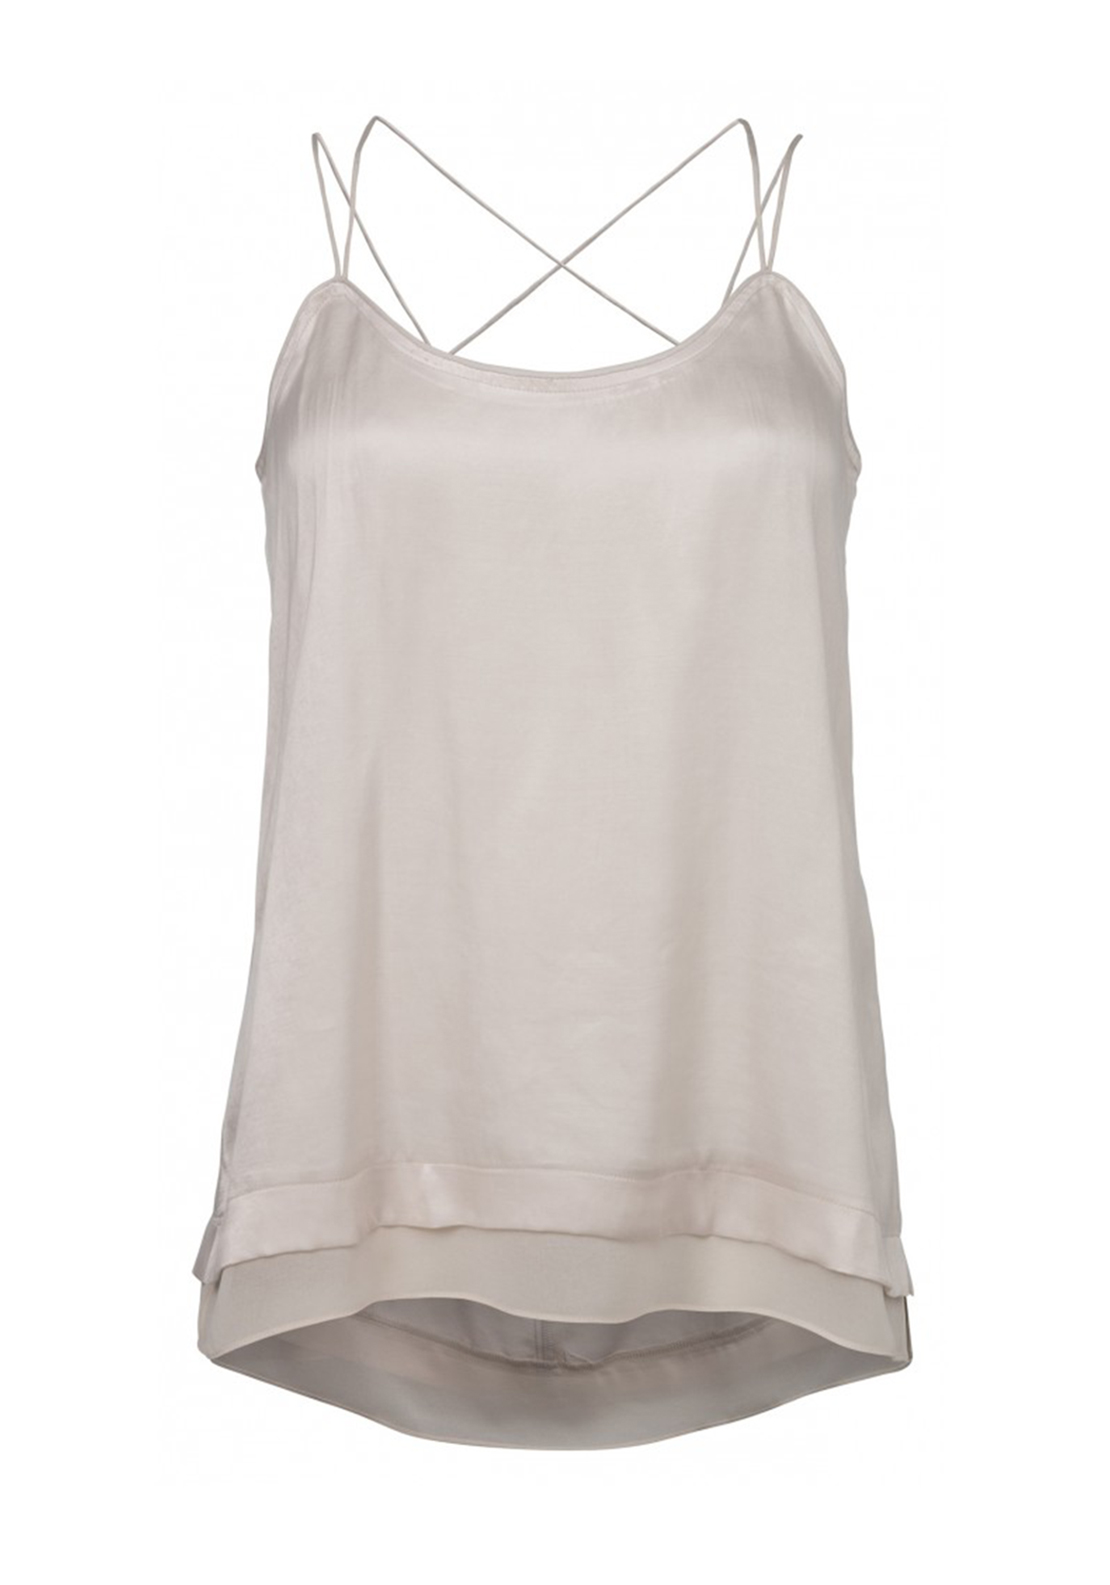 Yaya Strappy Faux Silk Camisole Top, Cream